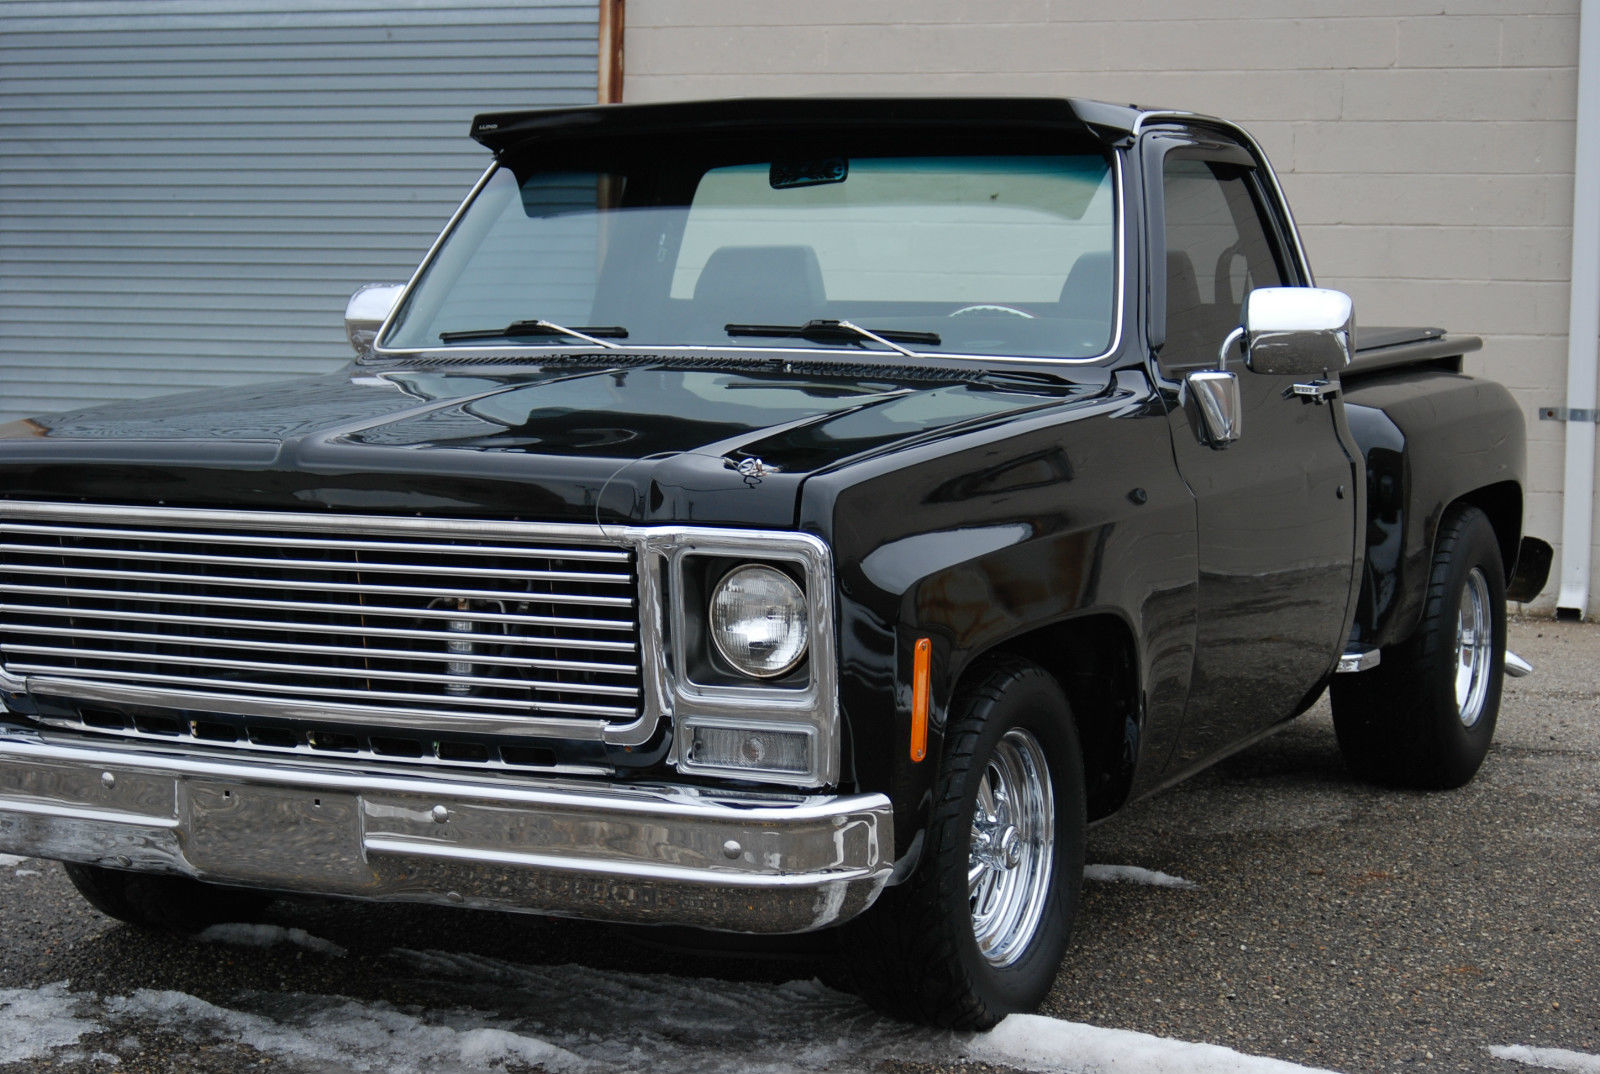 1980 Chevrolet C10 Short Bed Step Side Deluxe Custom Air Ride Lowered Classic Chevrolet C 10